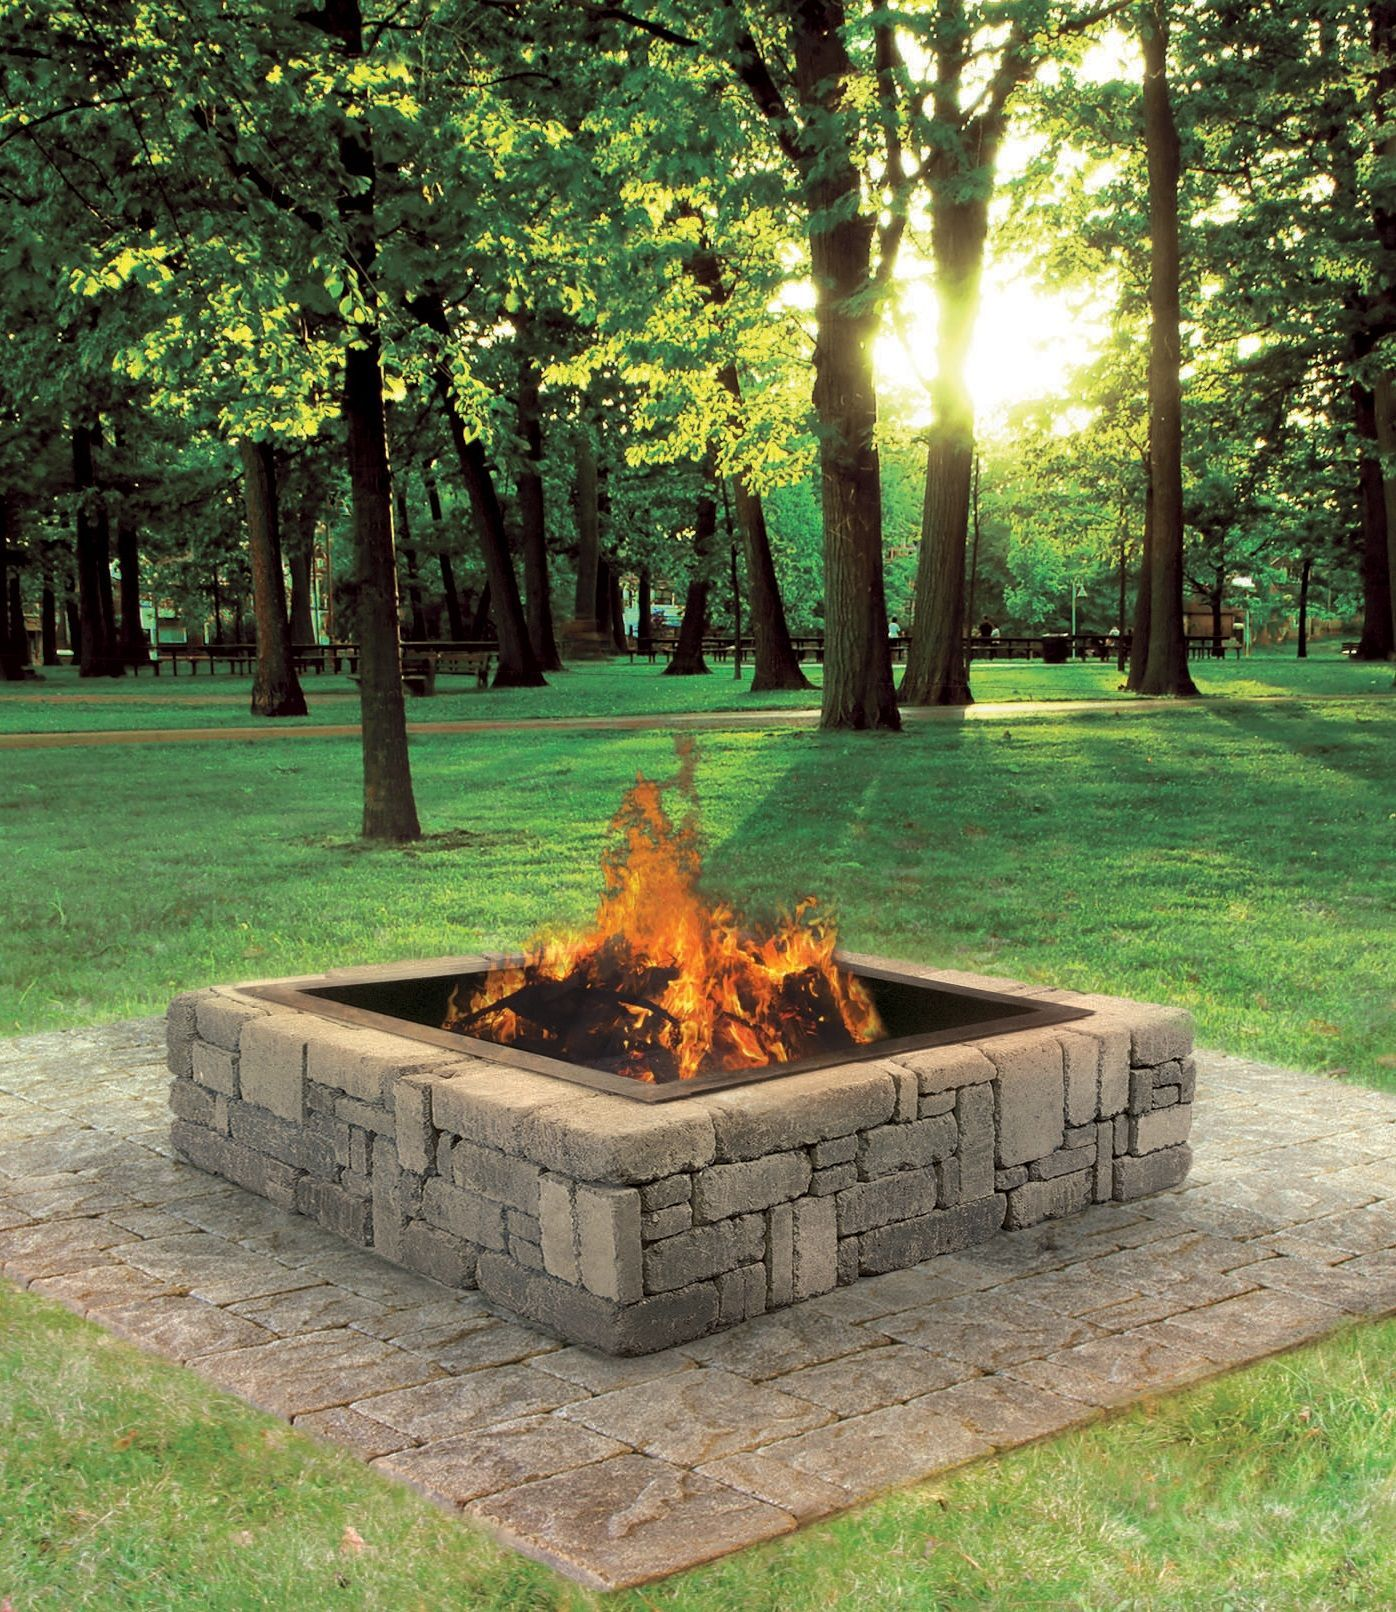 This Rustic Fire Pit Makes A Great Addition To Your Backyard Cabin Or Patio Extend Your Bonfire Seas Brasero De Jardin Foyer Carre Amenagement Cour